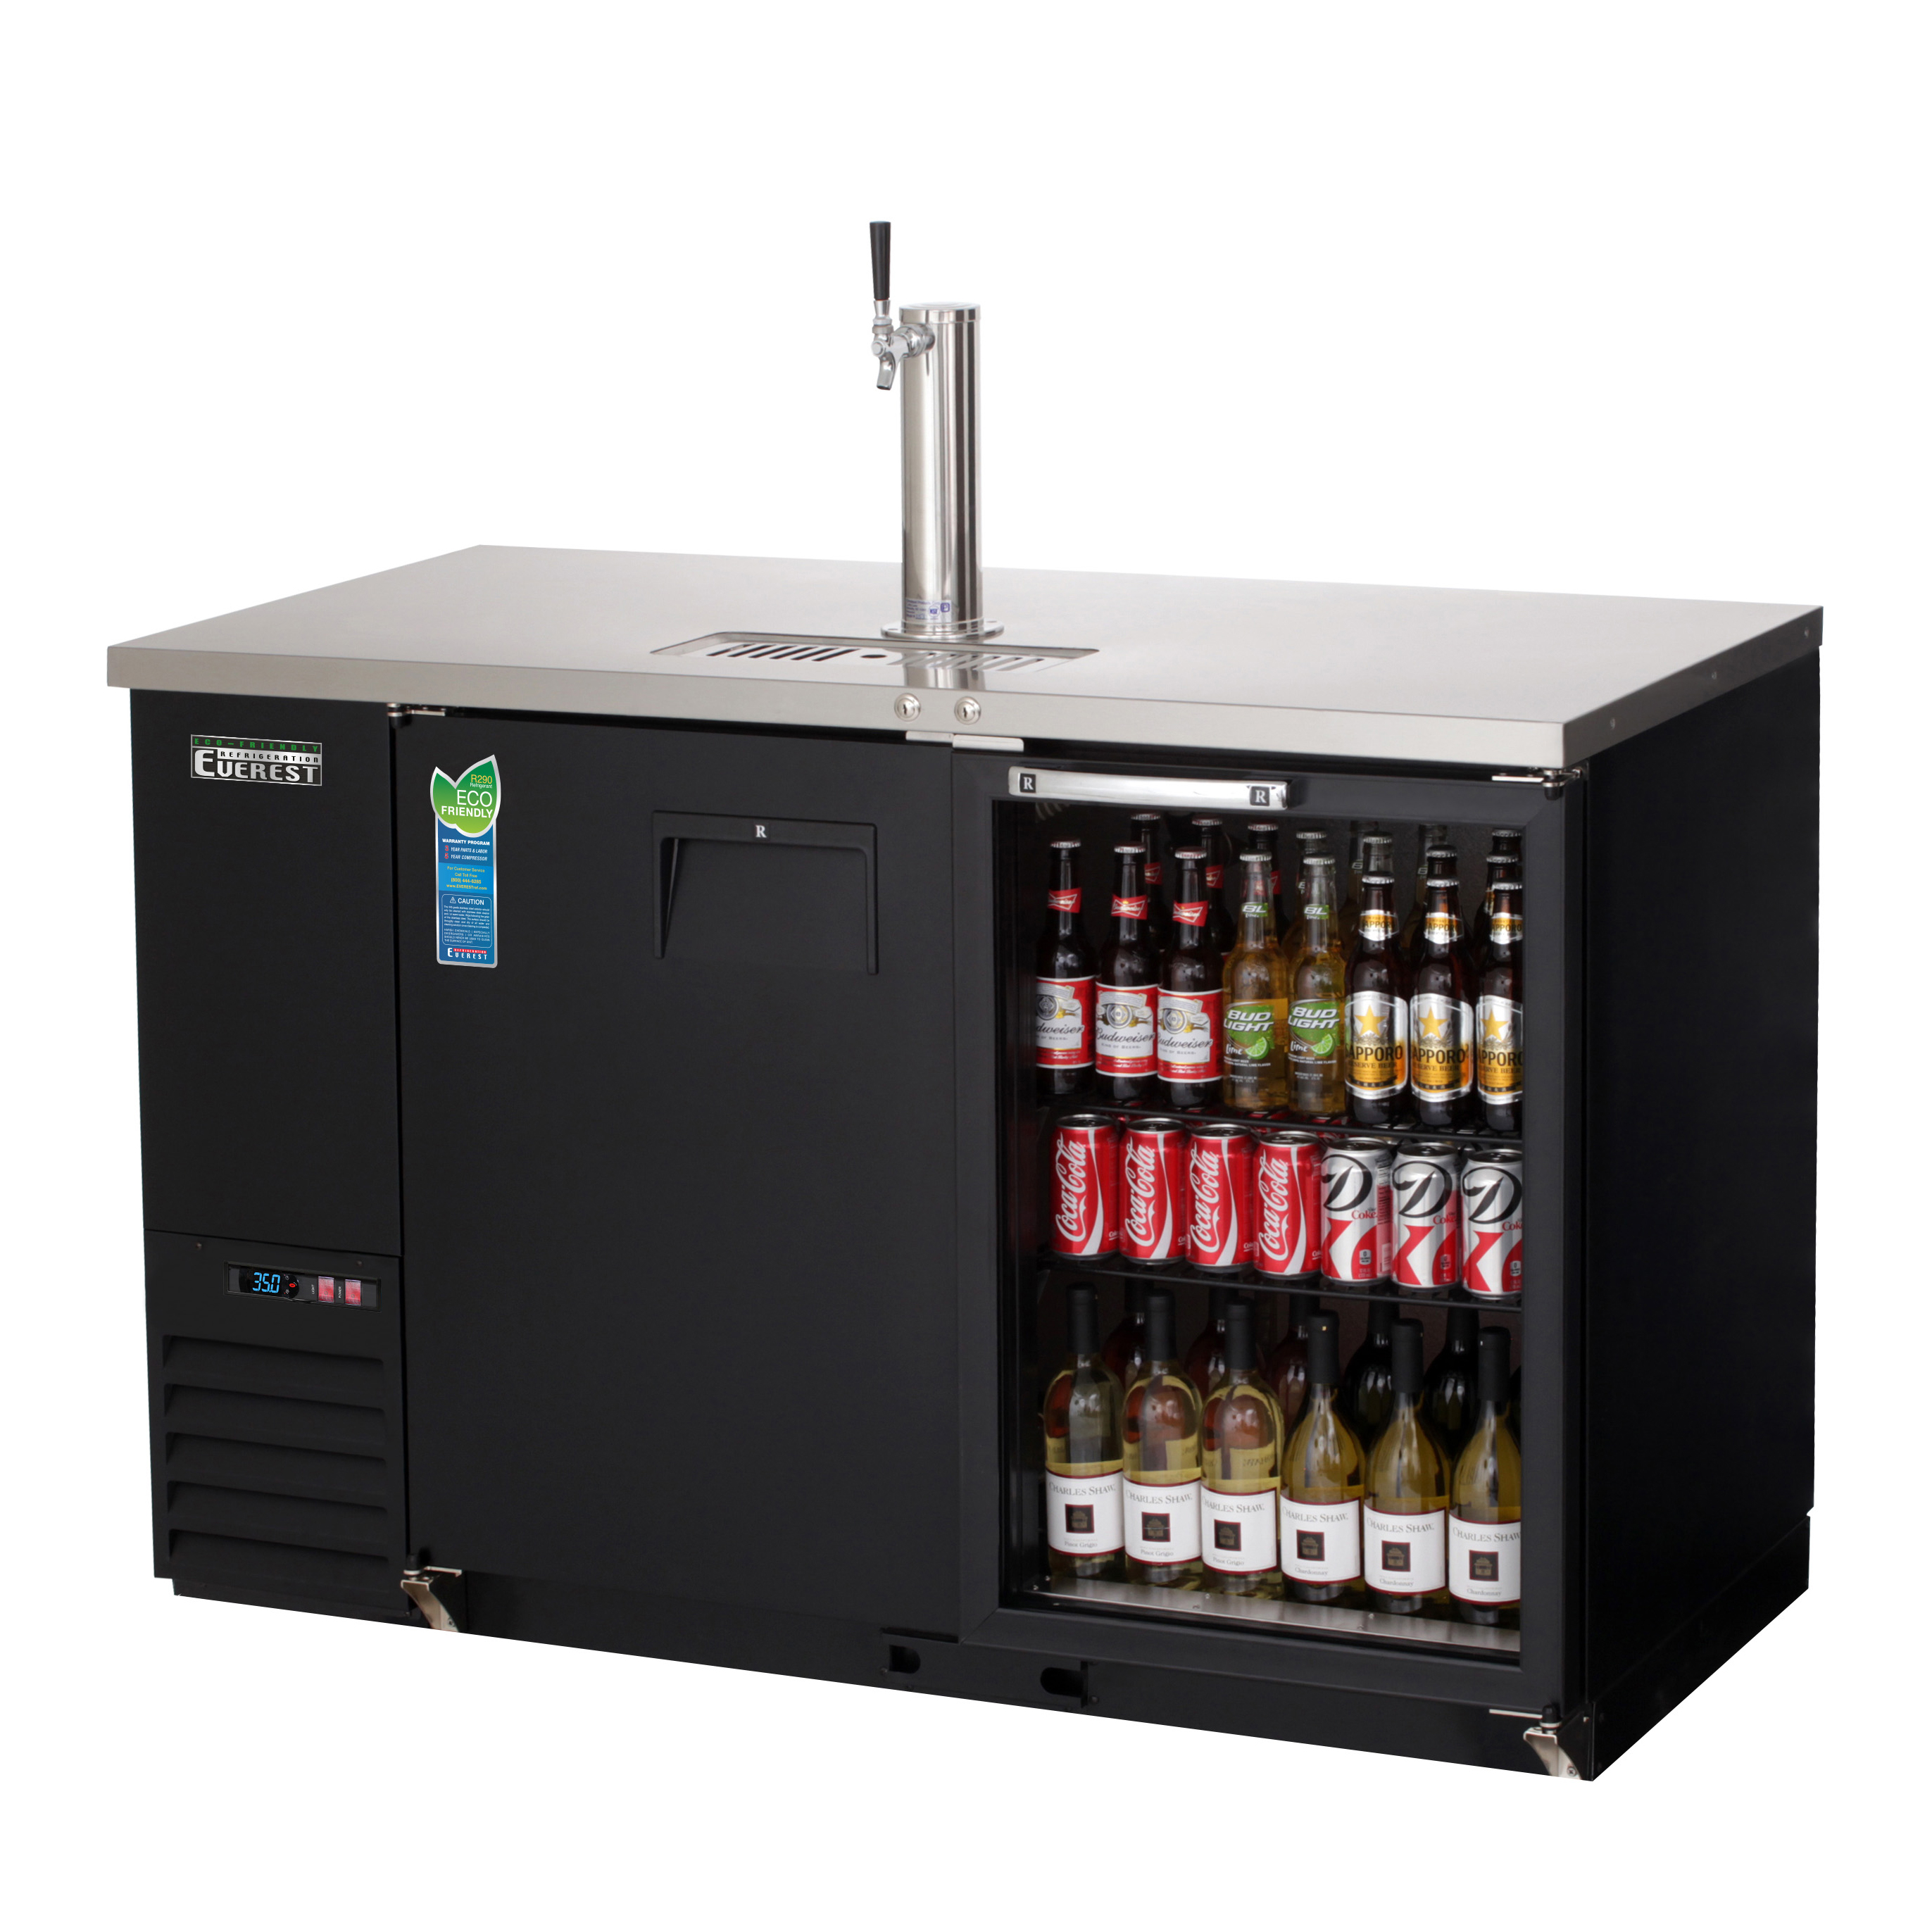 Everest Refrigeration EBD2-BBG-24 draft beer cooler